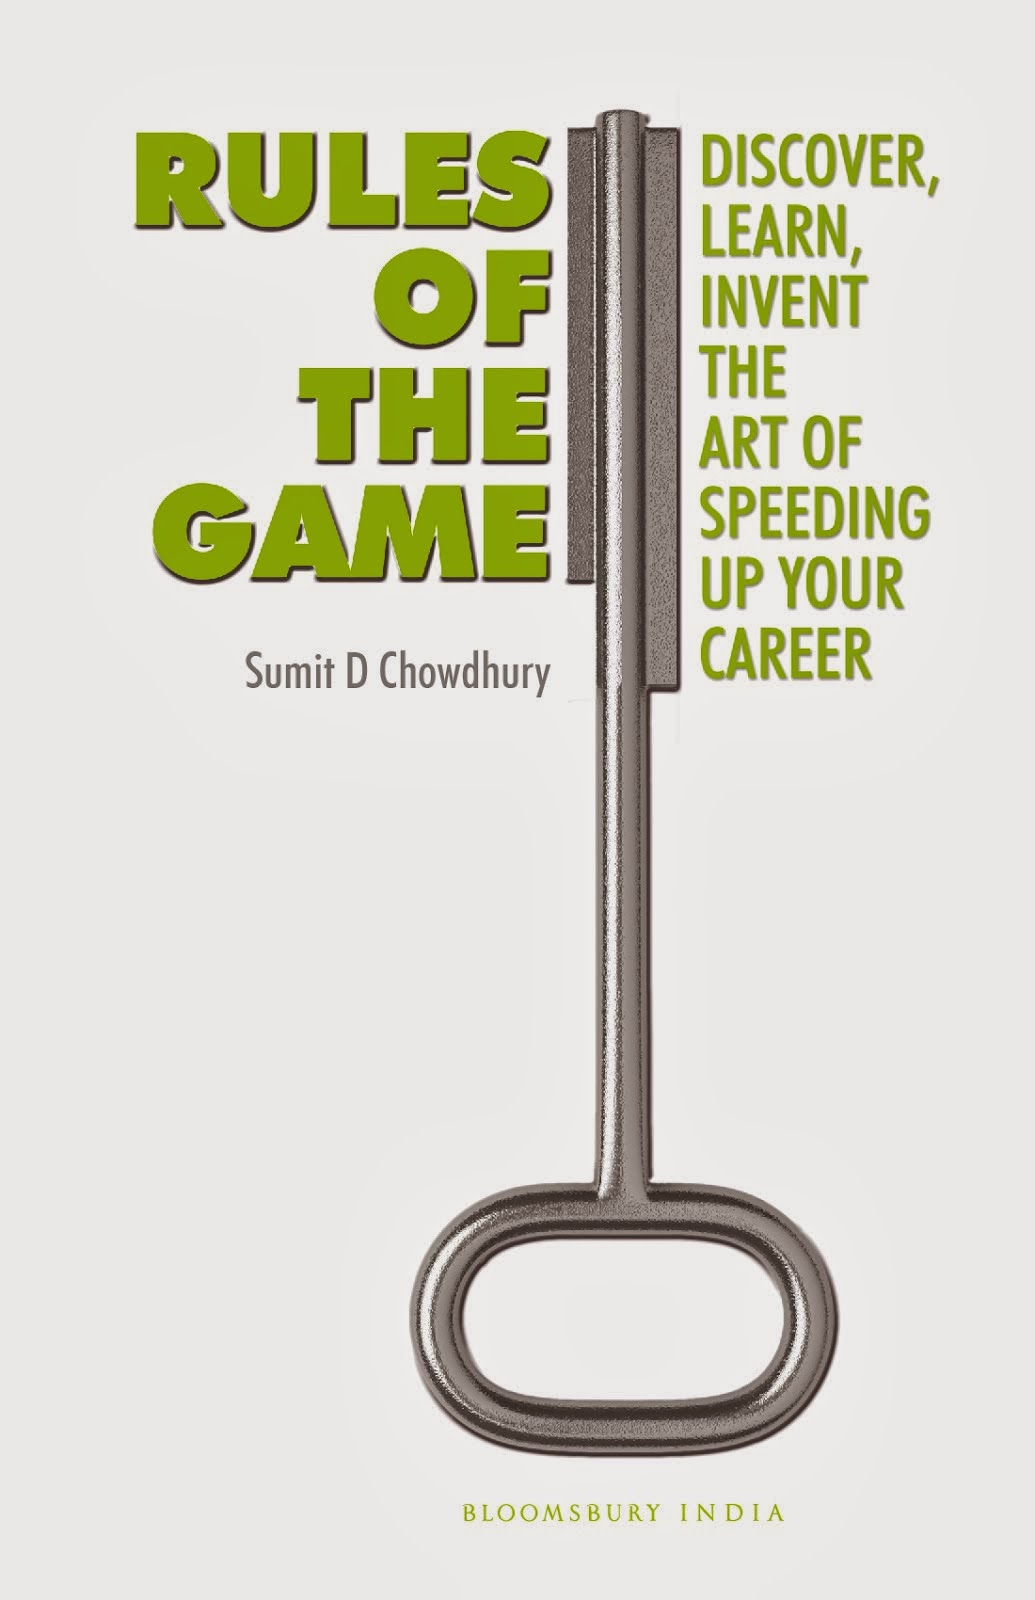 The Book on Career Management